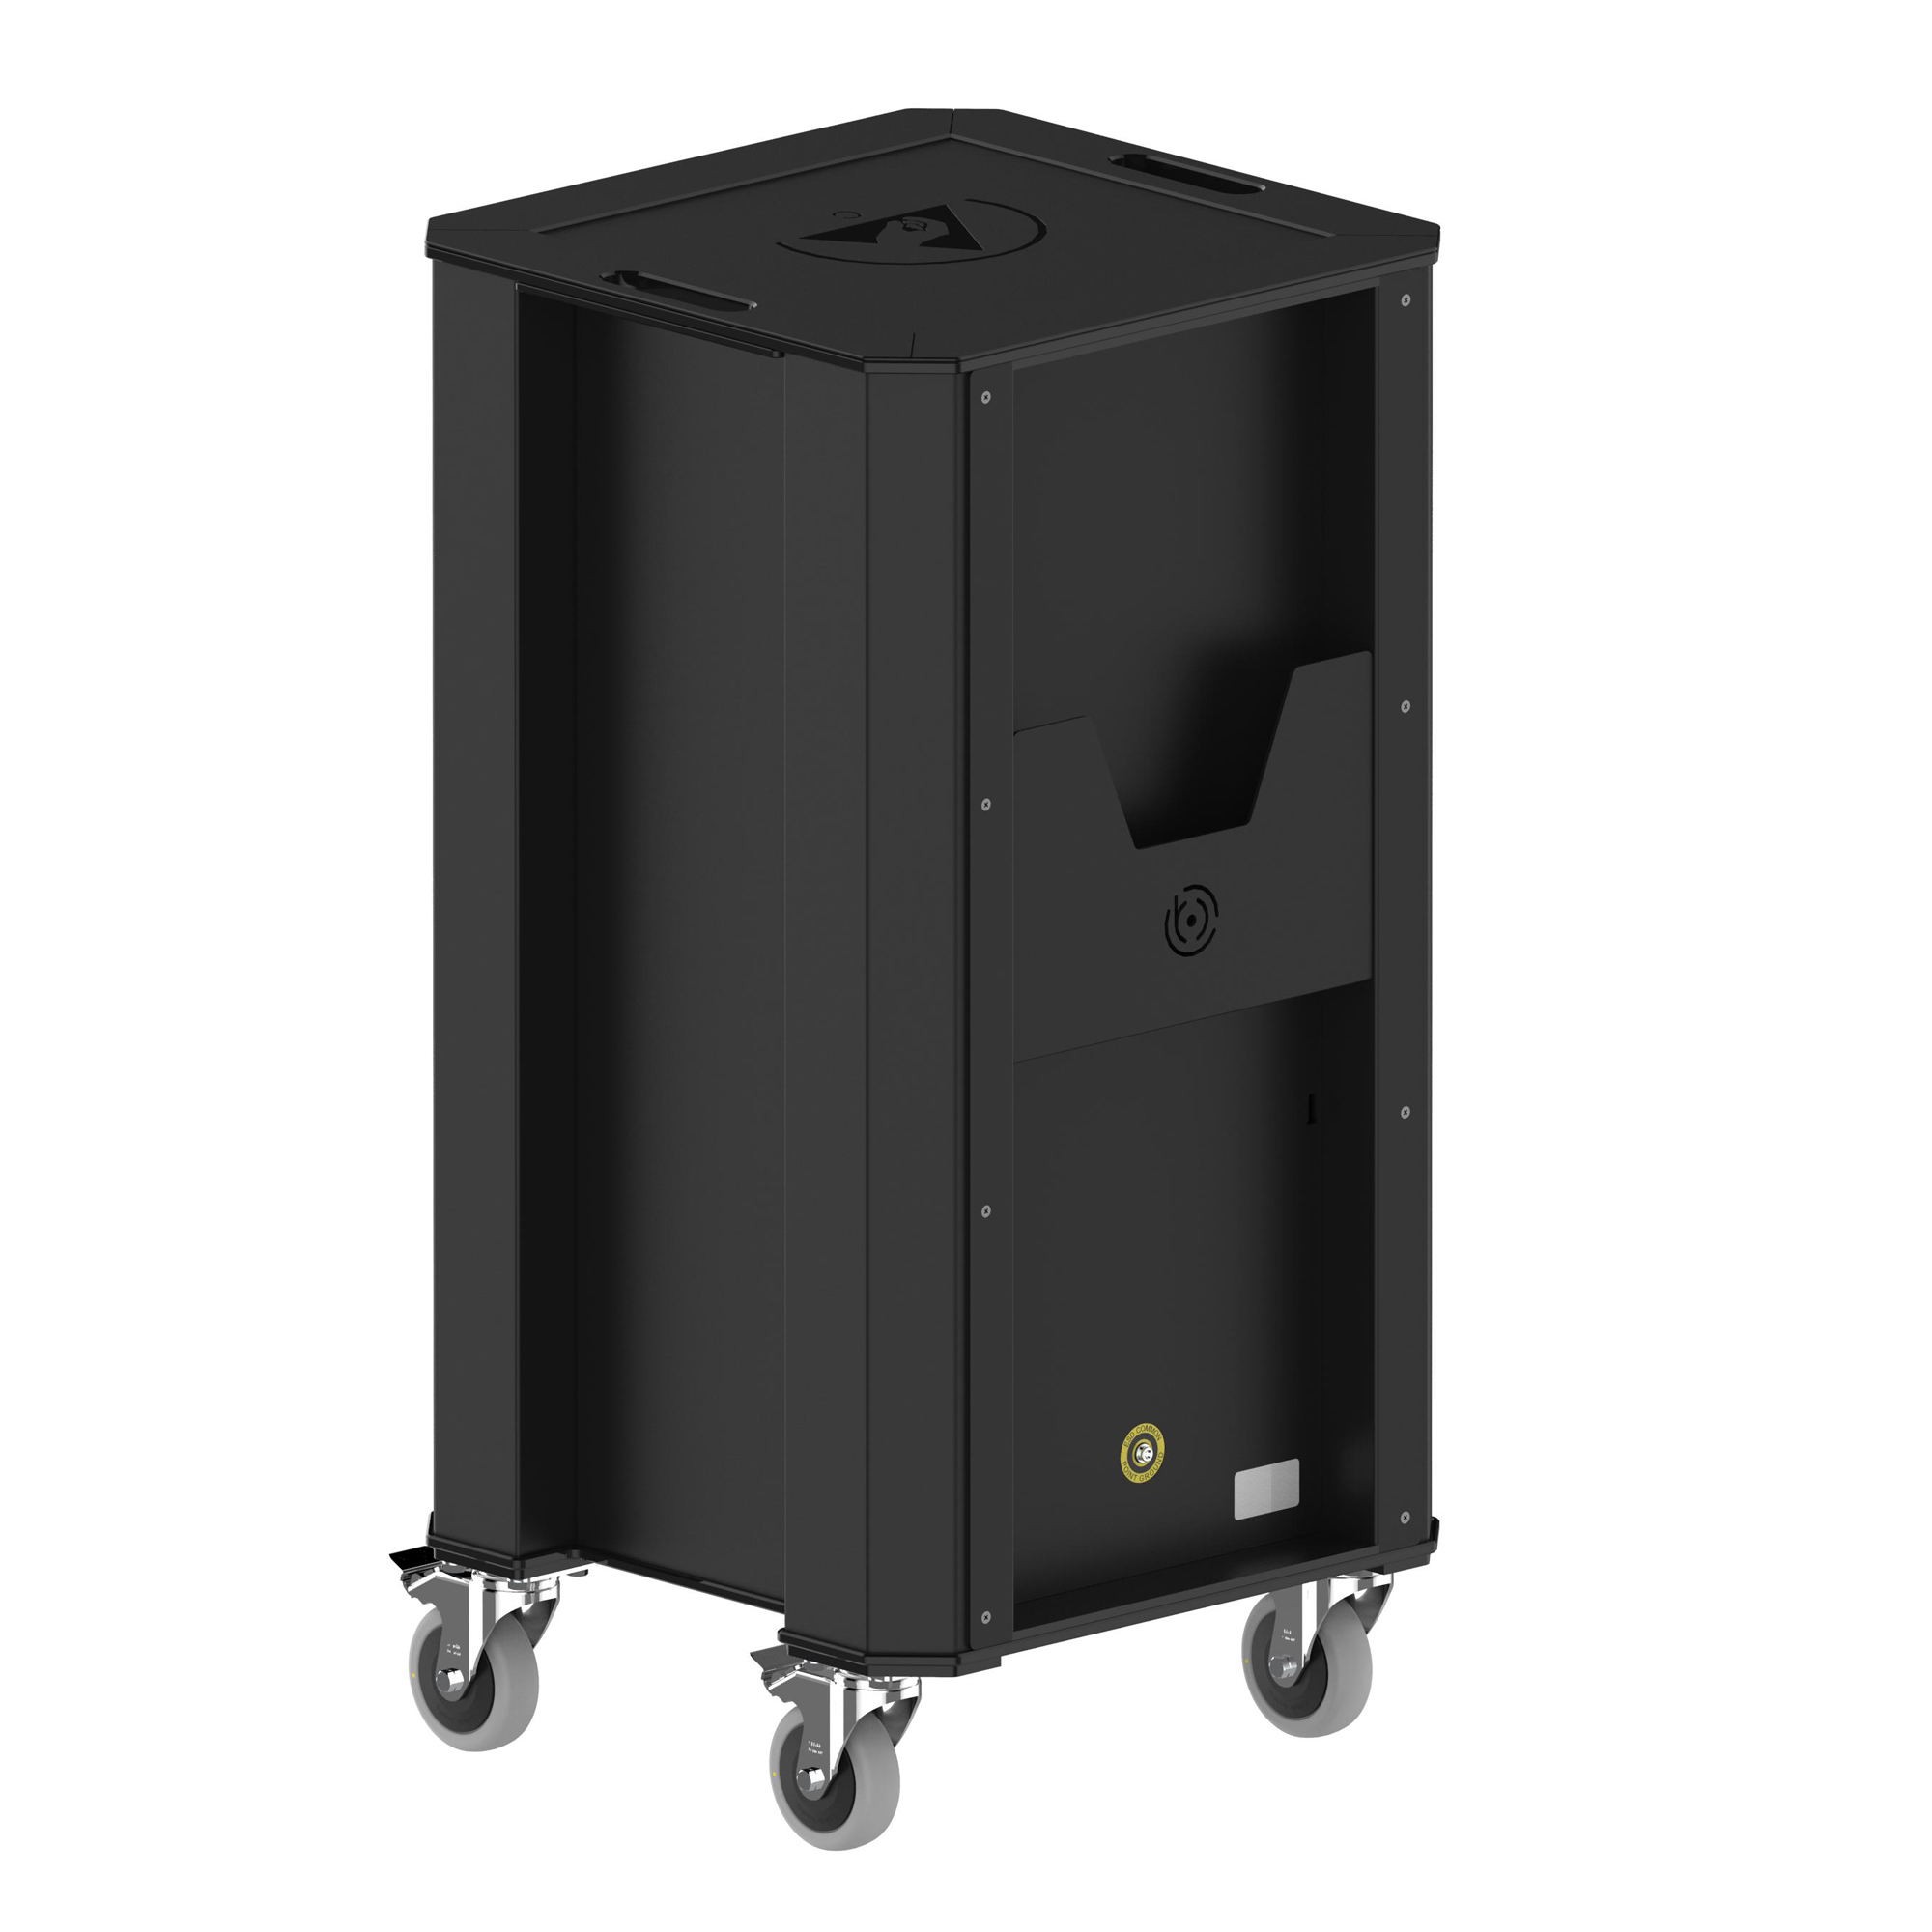 NUWCO ESD Cupboard Trolley